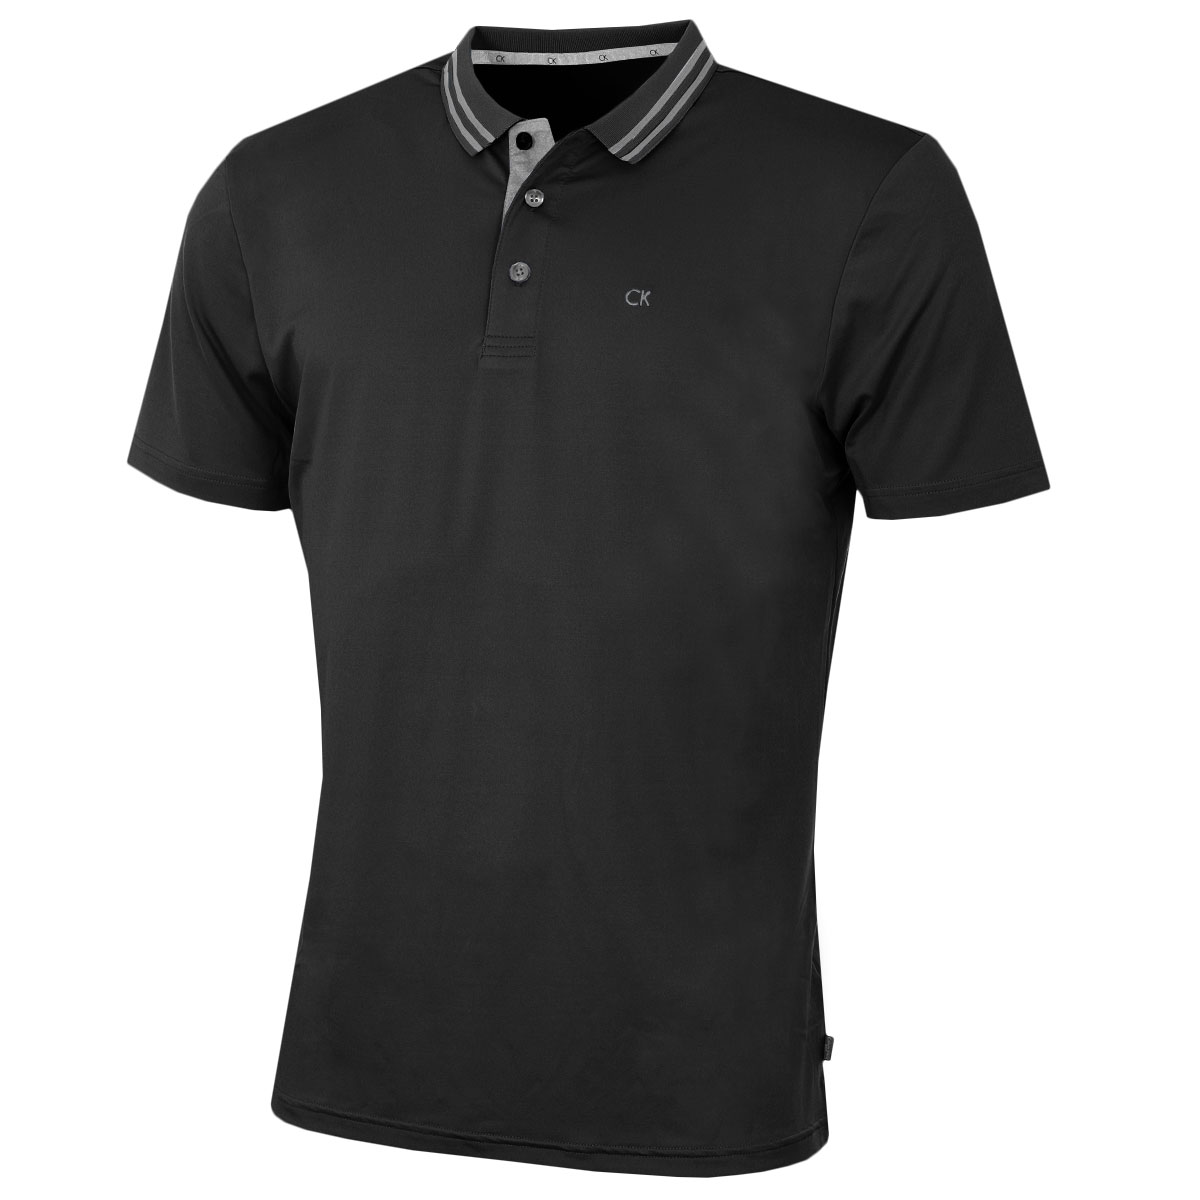 nueva productos a724d 18370 Details about Calvin Klein Golf Mens CK Madison Lightweight Stretch Polo  Shirt 25% OFF RRP